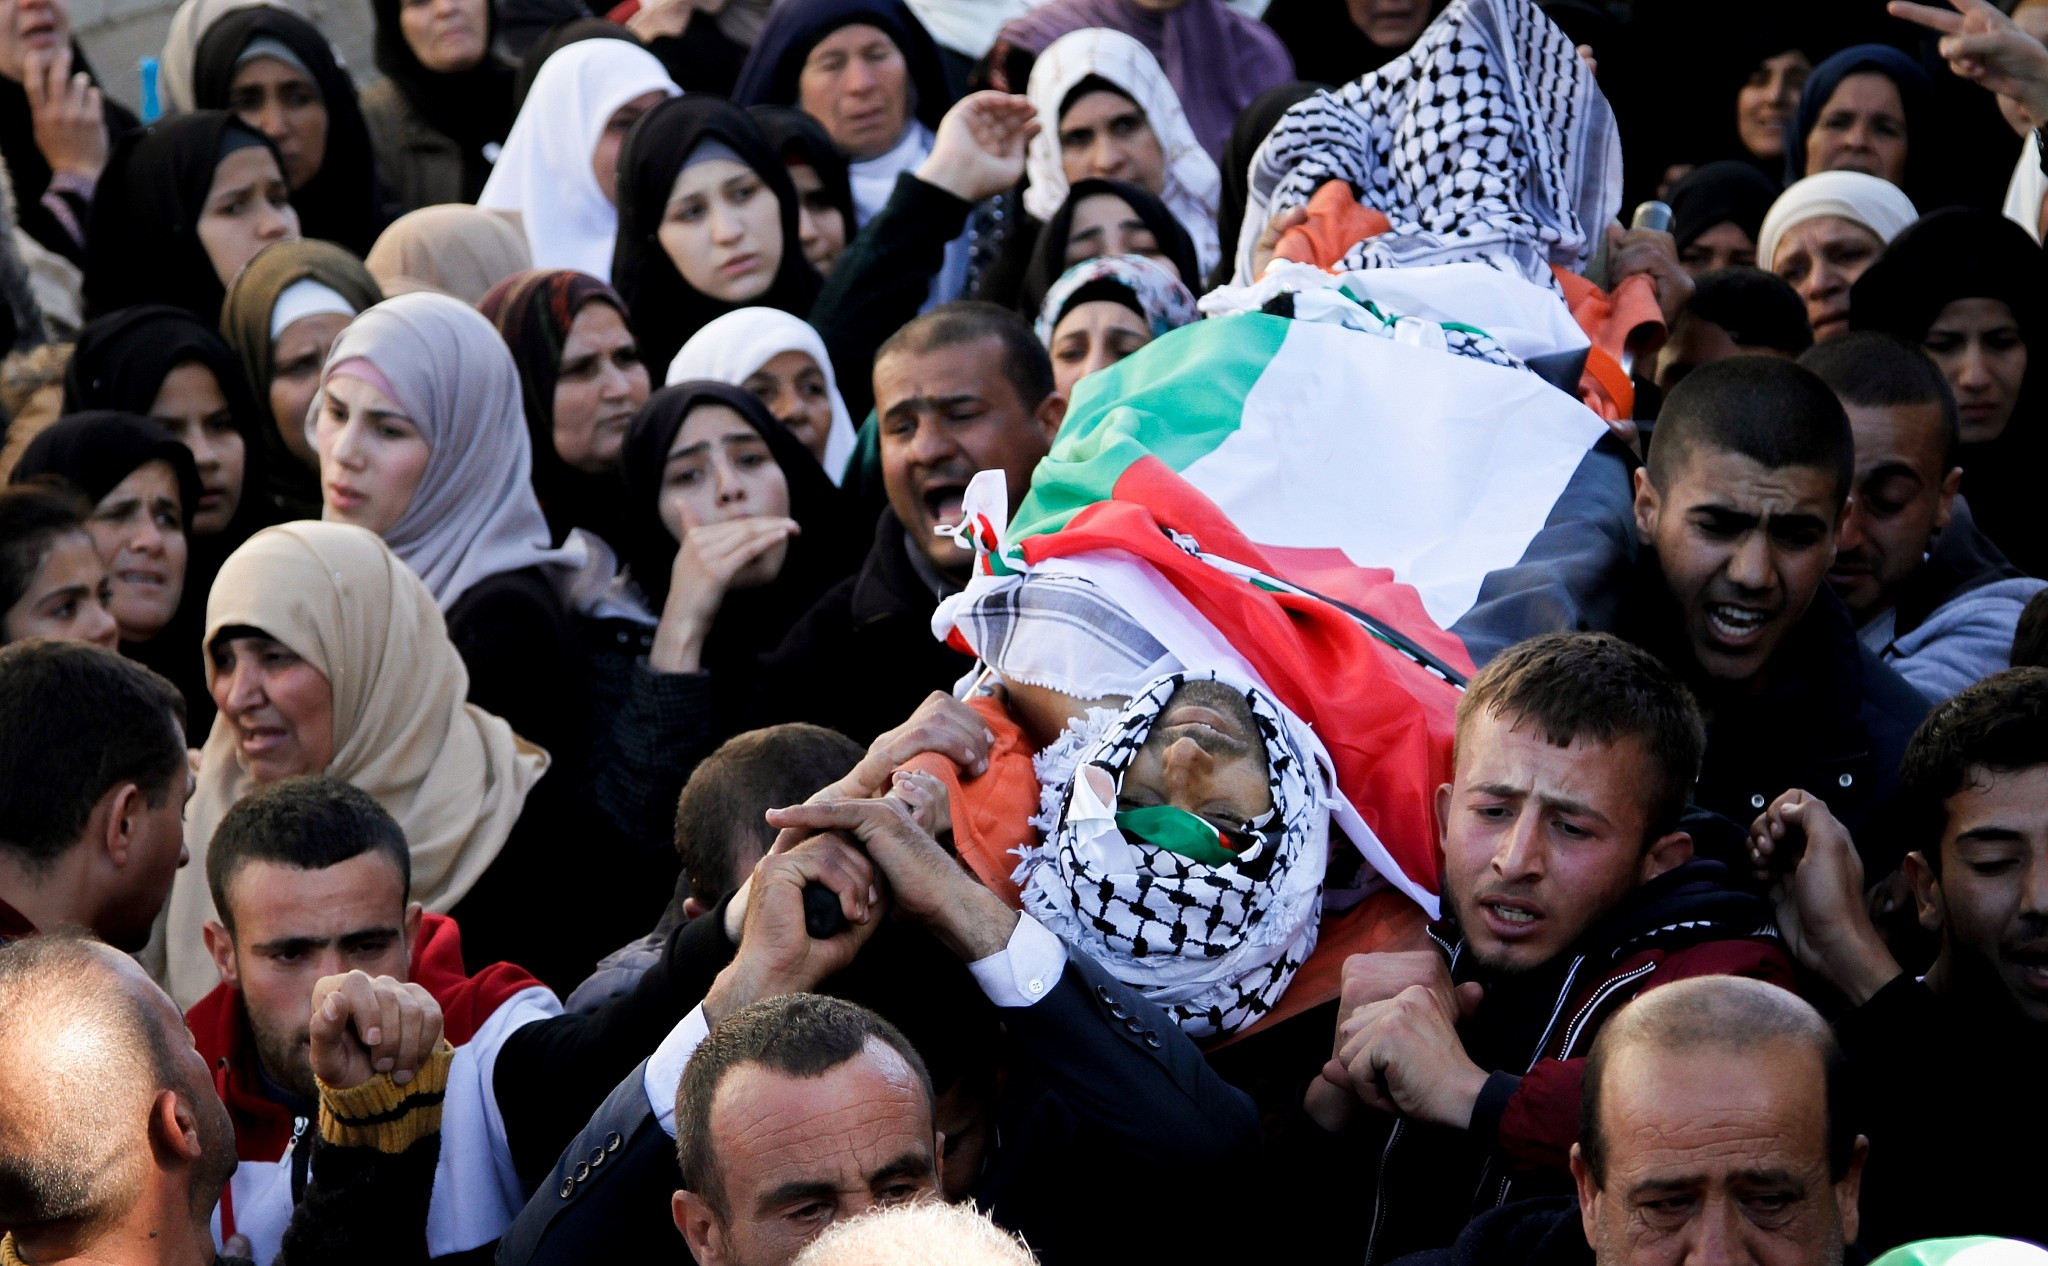 Palestinian reportedly killed — Clashes near Qusra